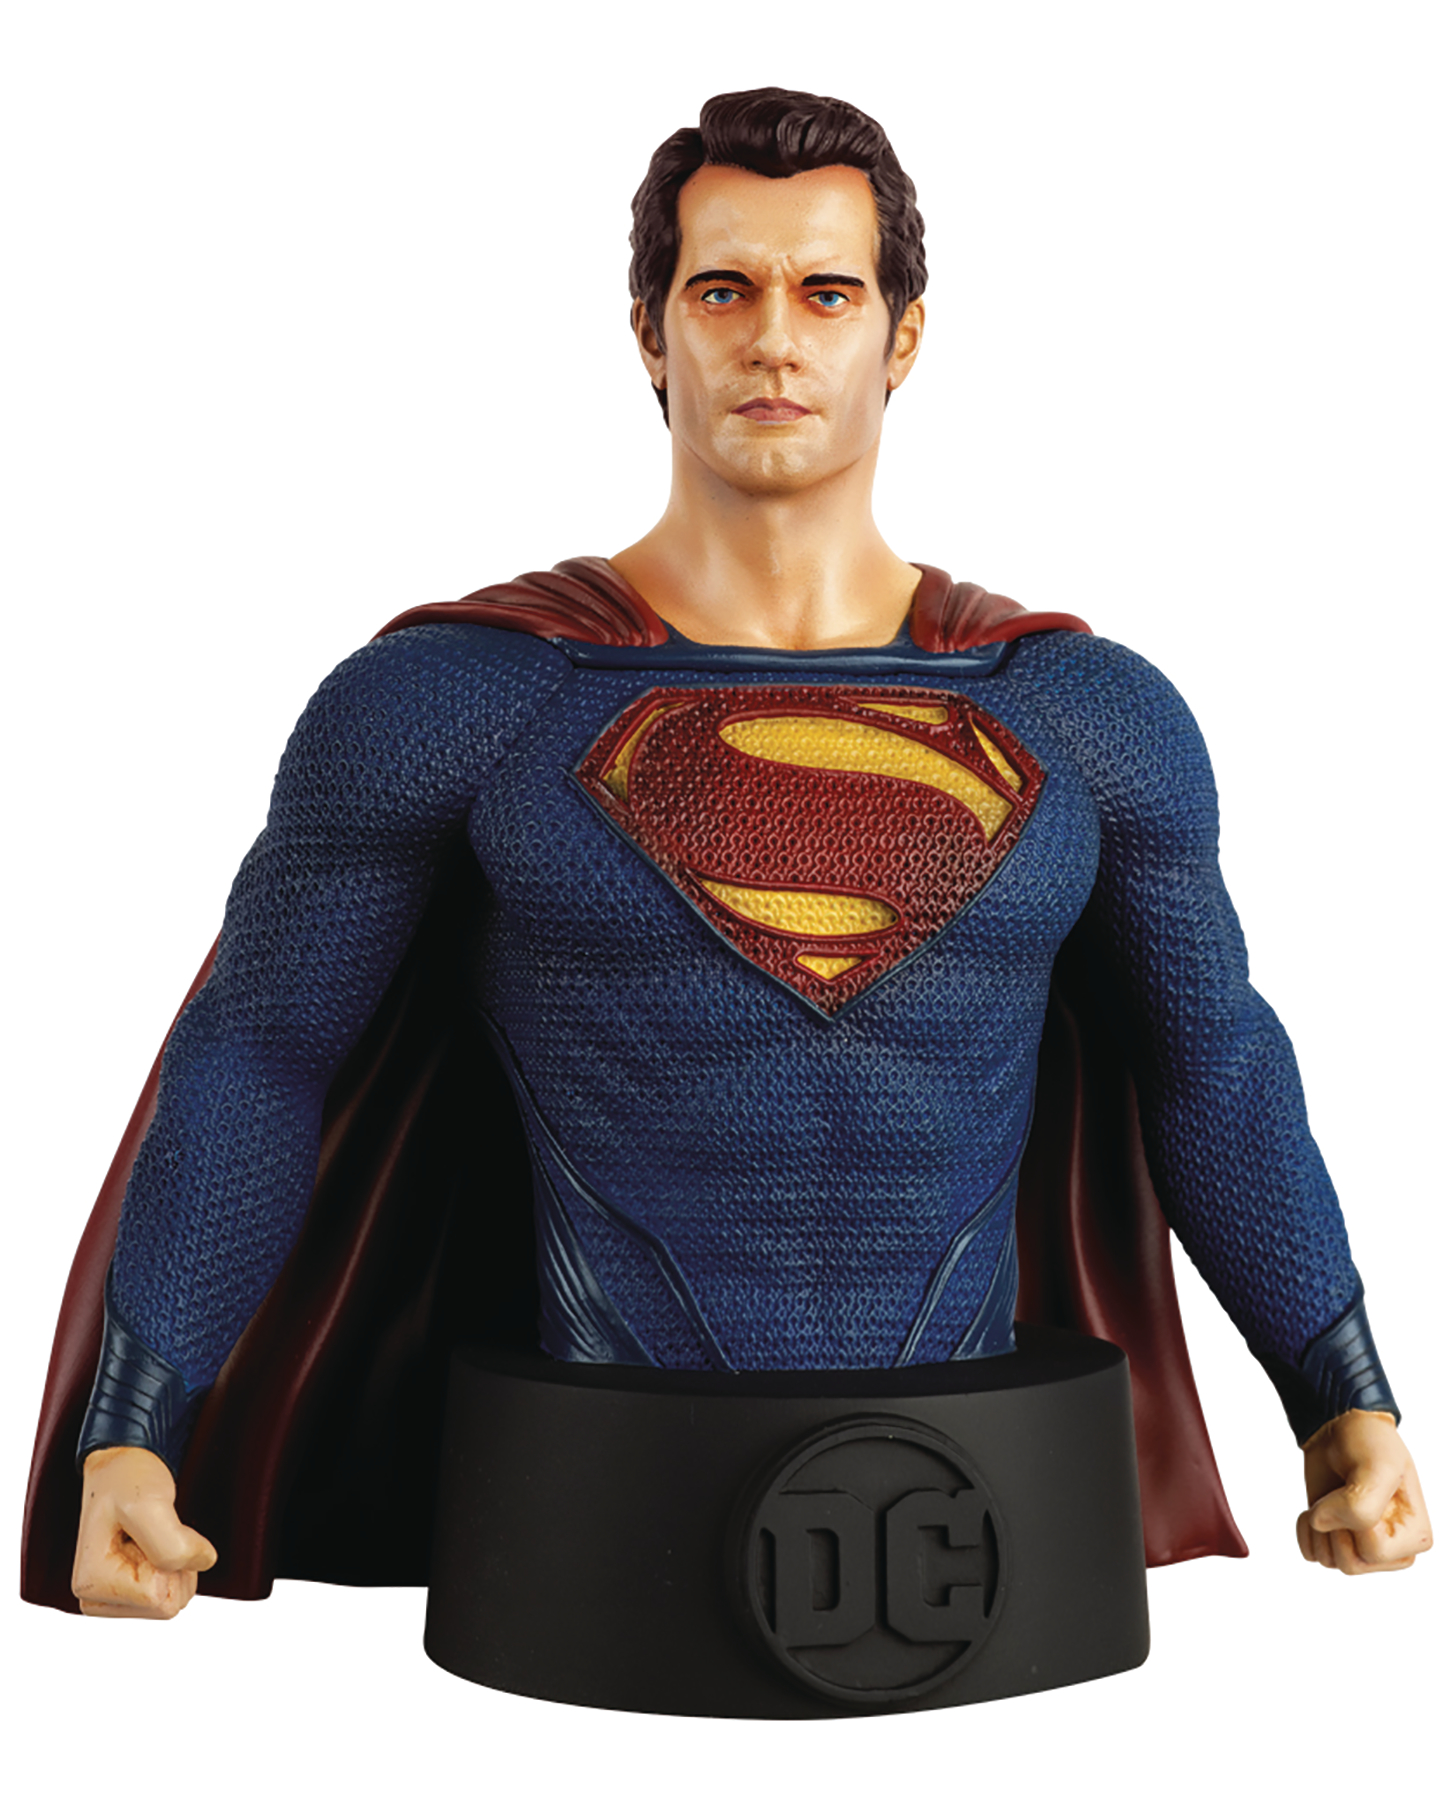 DC BATMAN UNIVERSE BUST COLL #15 MAN OF STEEL MOVIE SUPERMAN